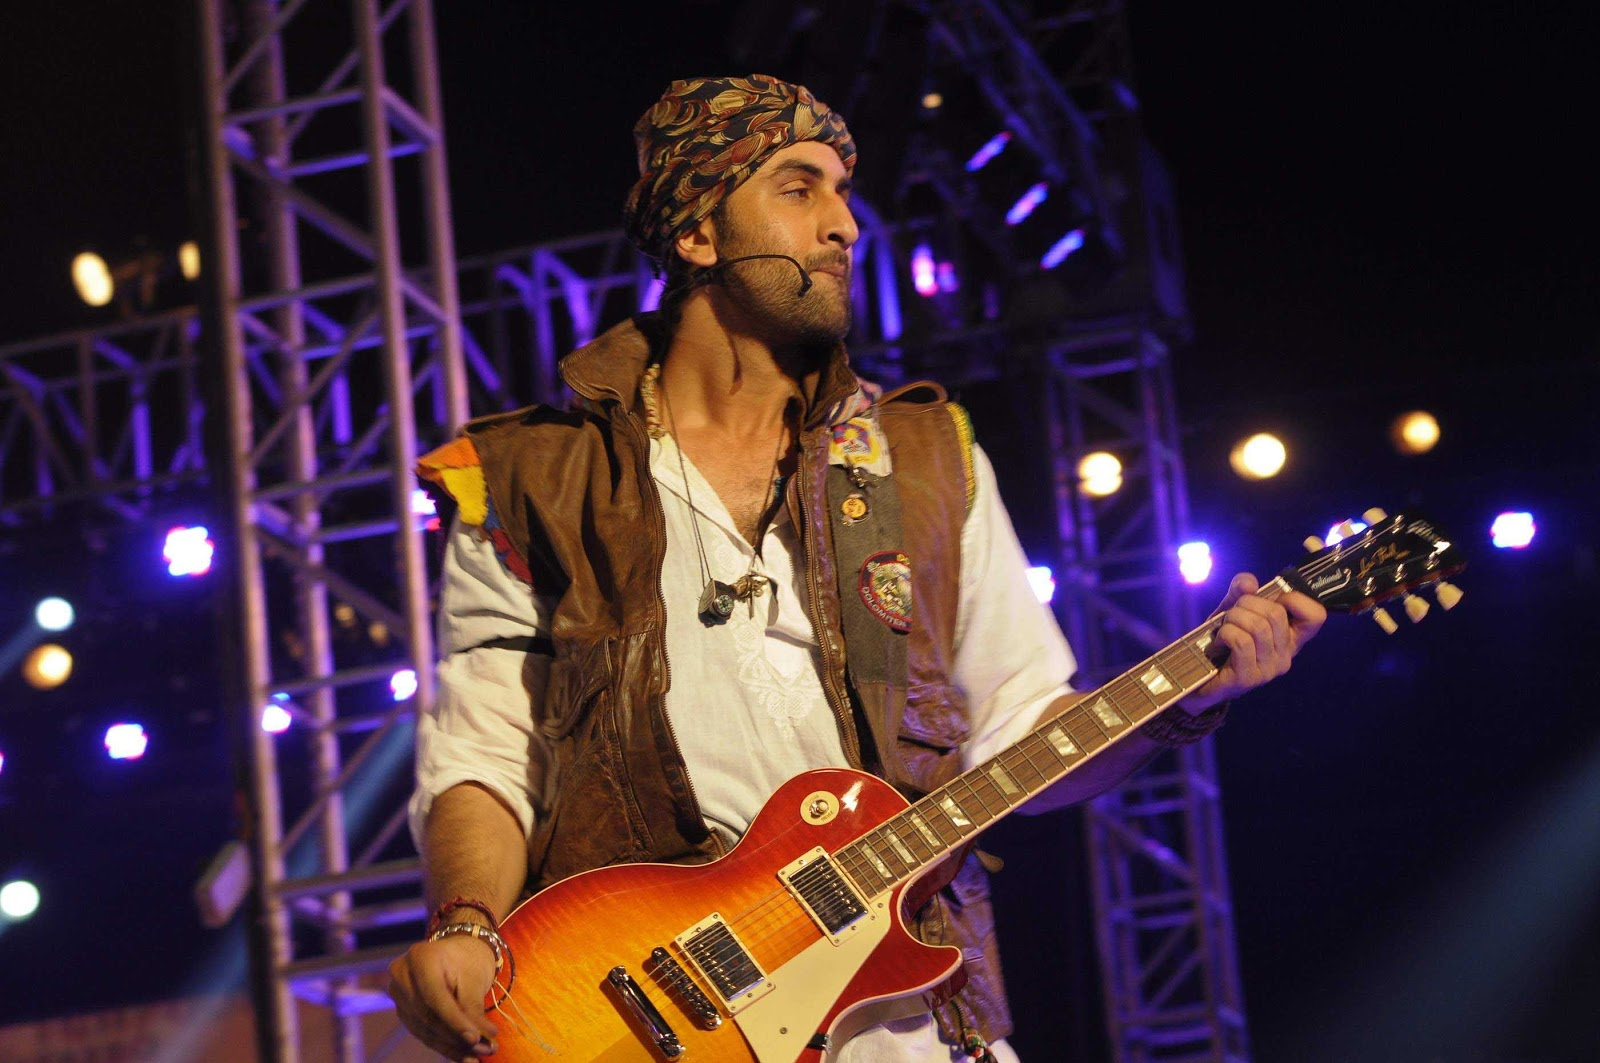 Great Wallpaper Movie Rockstar - Ranbir+Kapoor+in+and+as+Rockstar++3  Gallery_231071.jpg